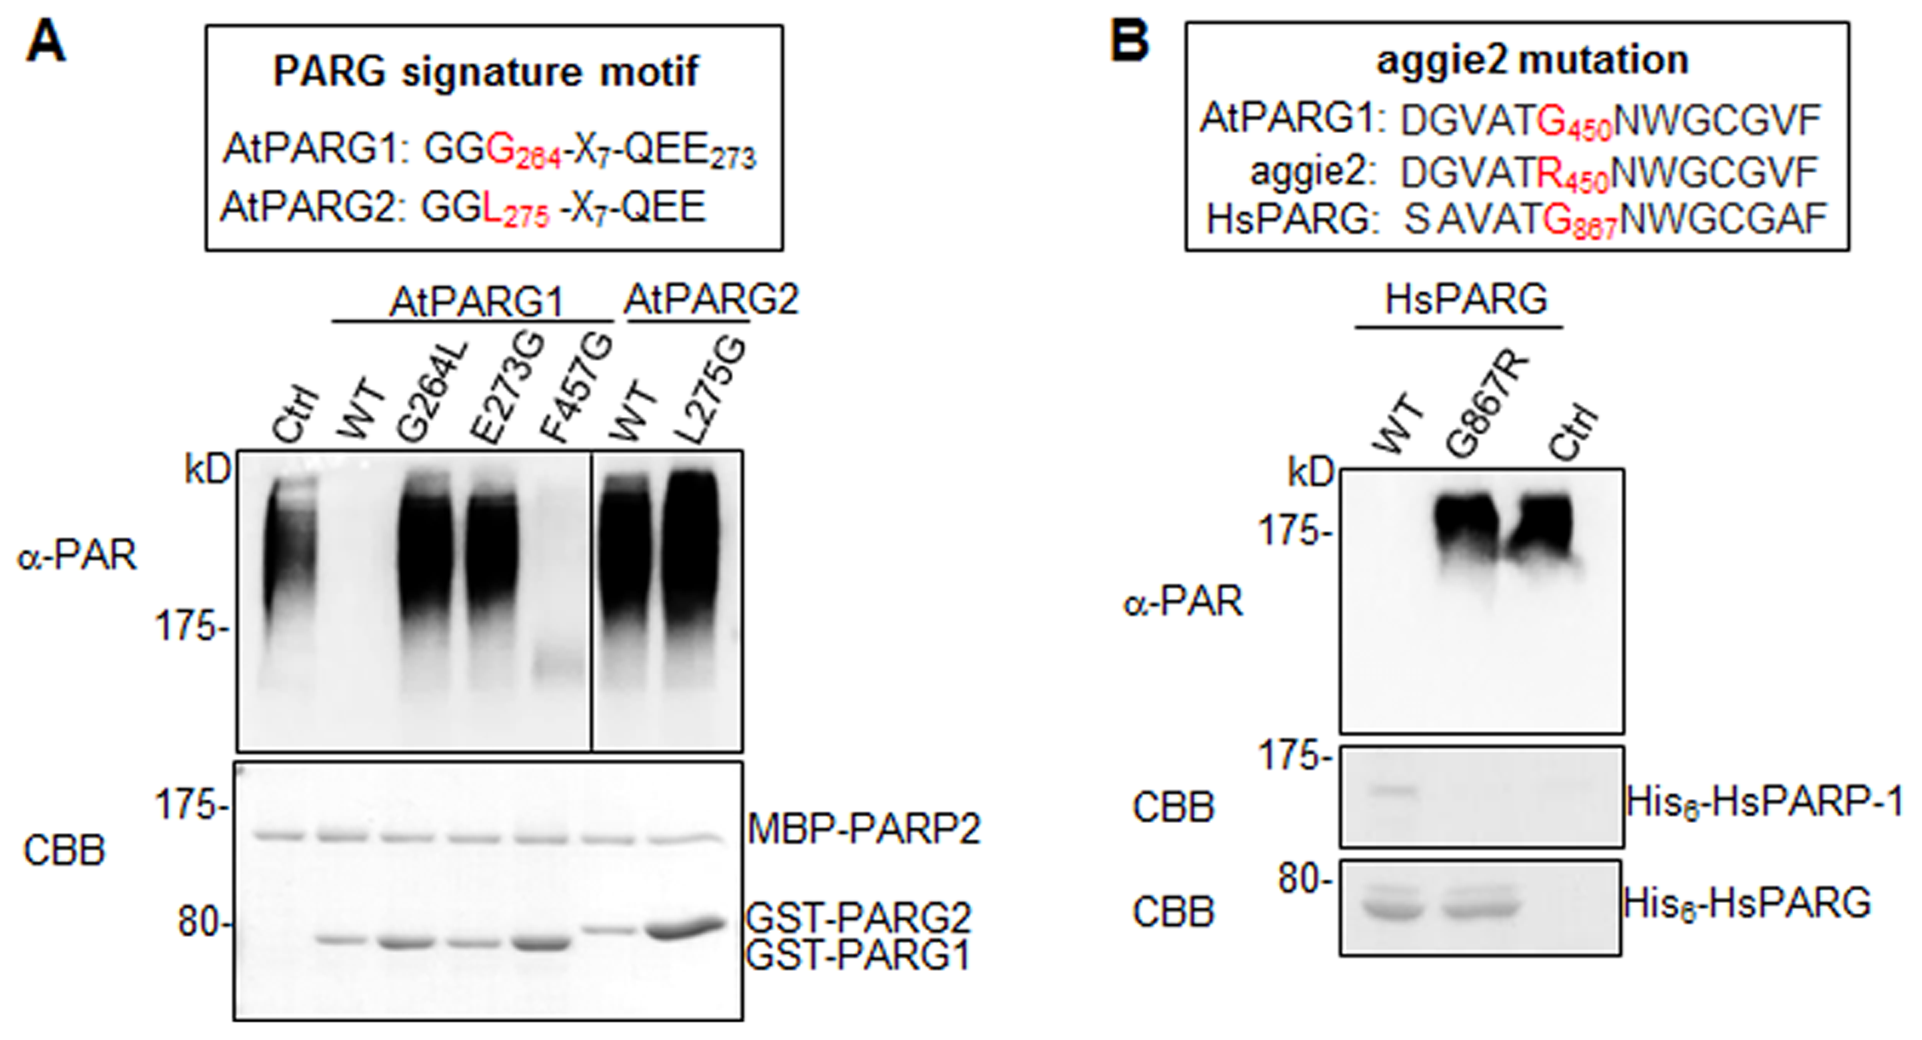 The signature motif and residue G450 are essential for PARG enzymatic activity.